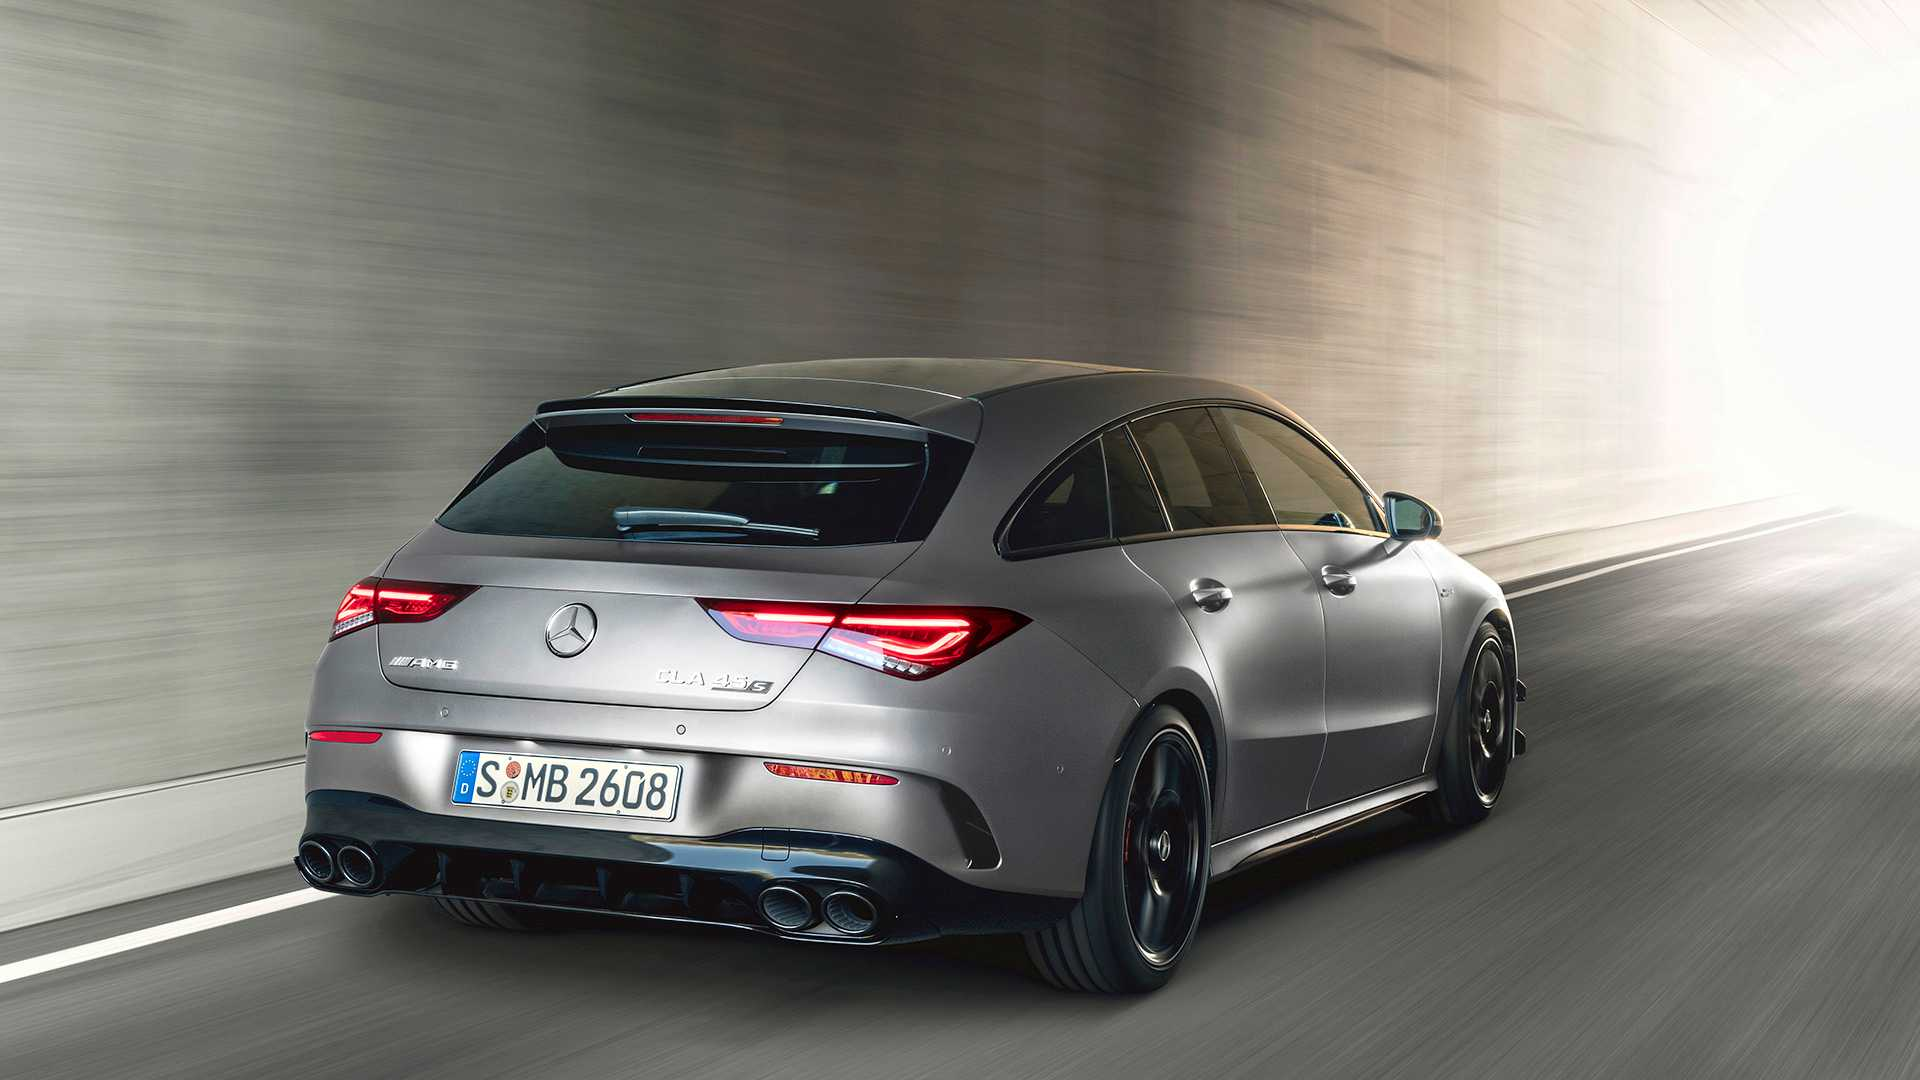 2020 Mercedes-AMG CLA 45 S 4MATIC+ Shooting Brake Rear Wallpapers (13)